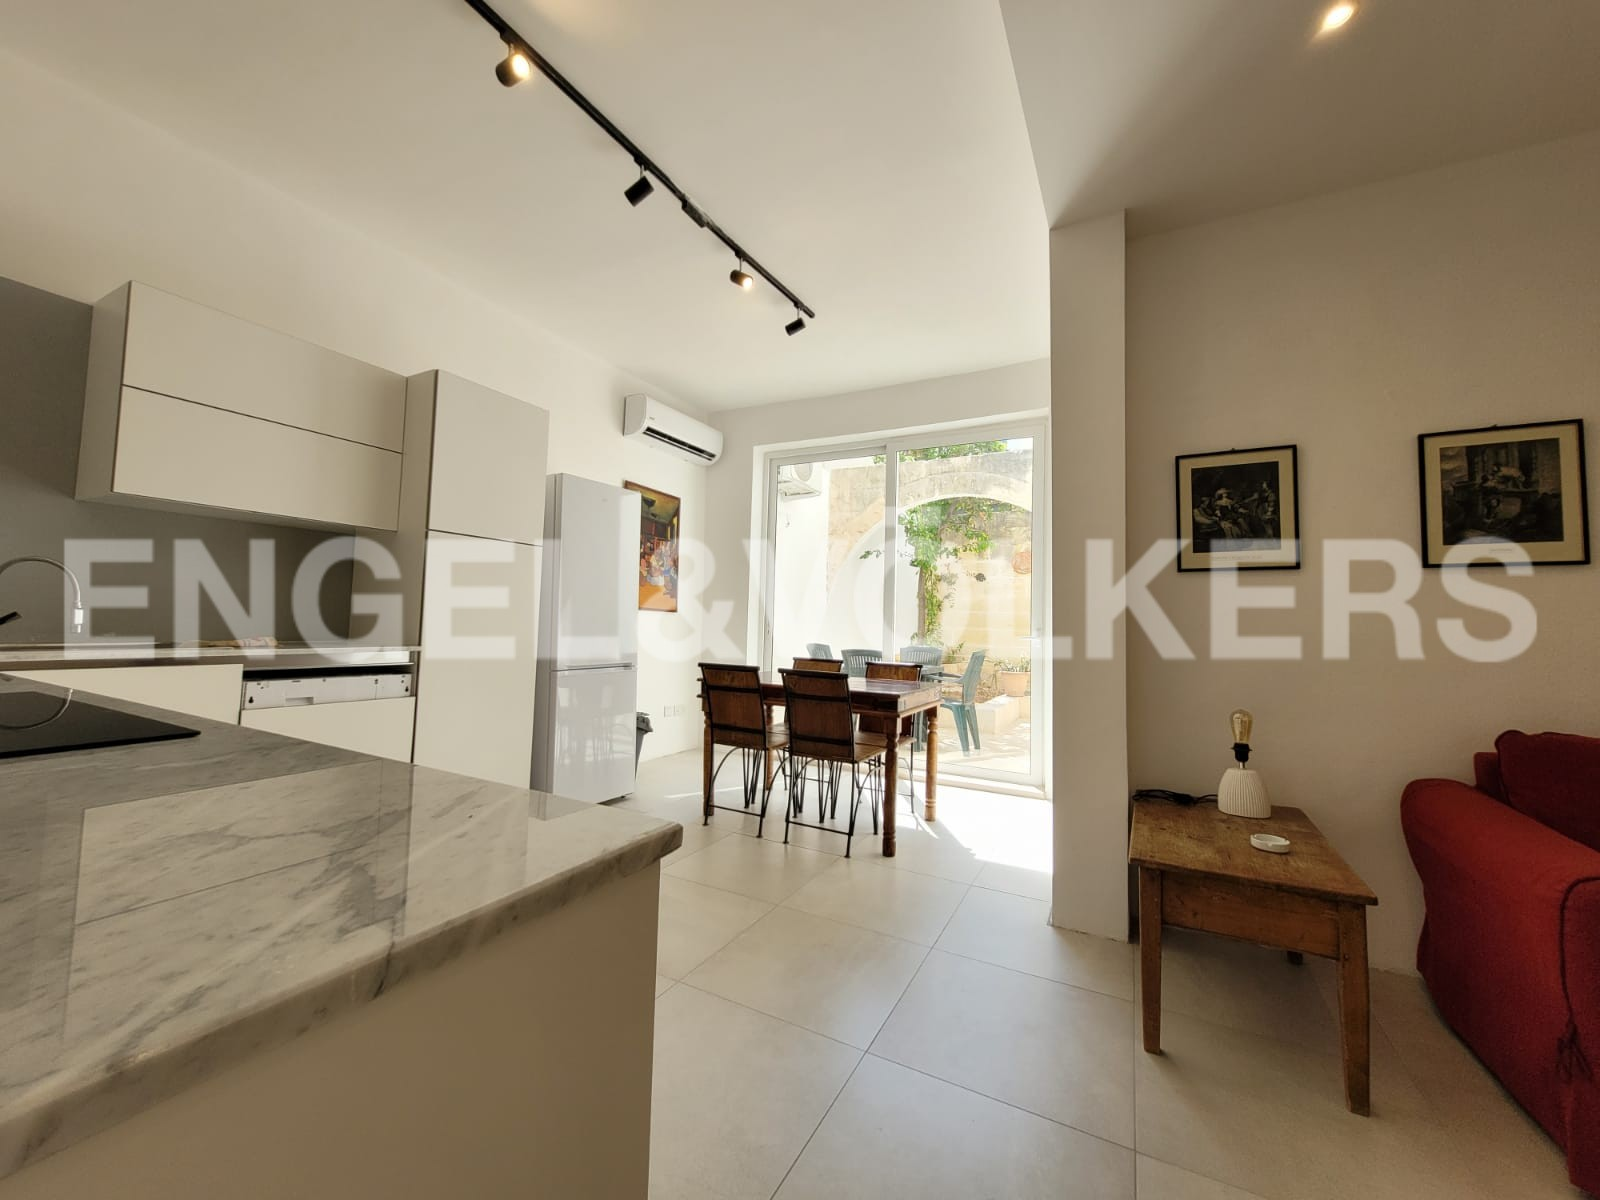 Apartment in Kappara - Kitchen / Dining Room